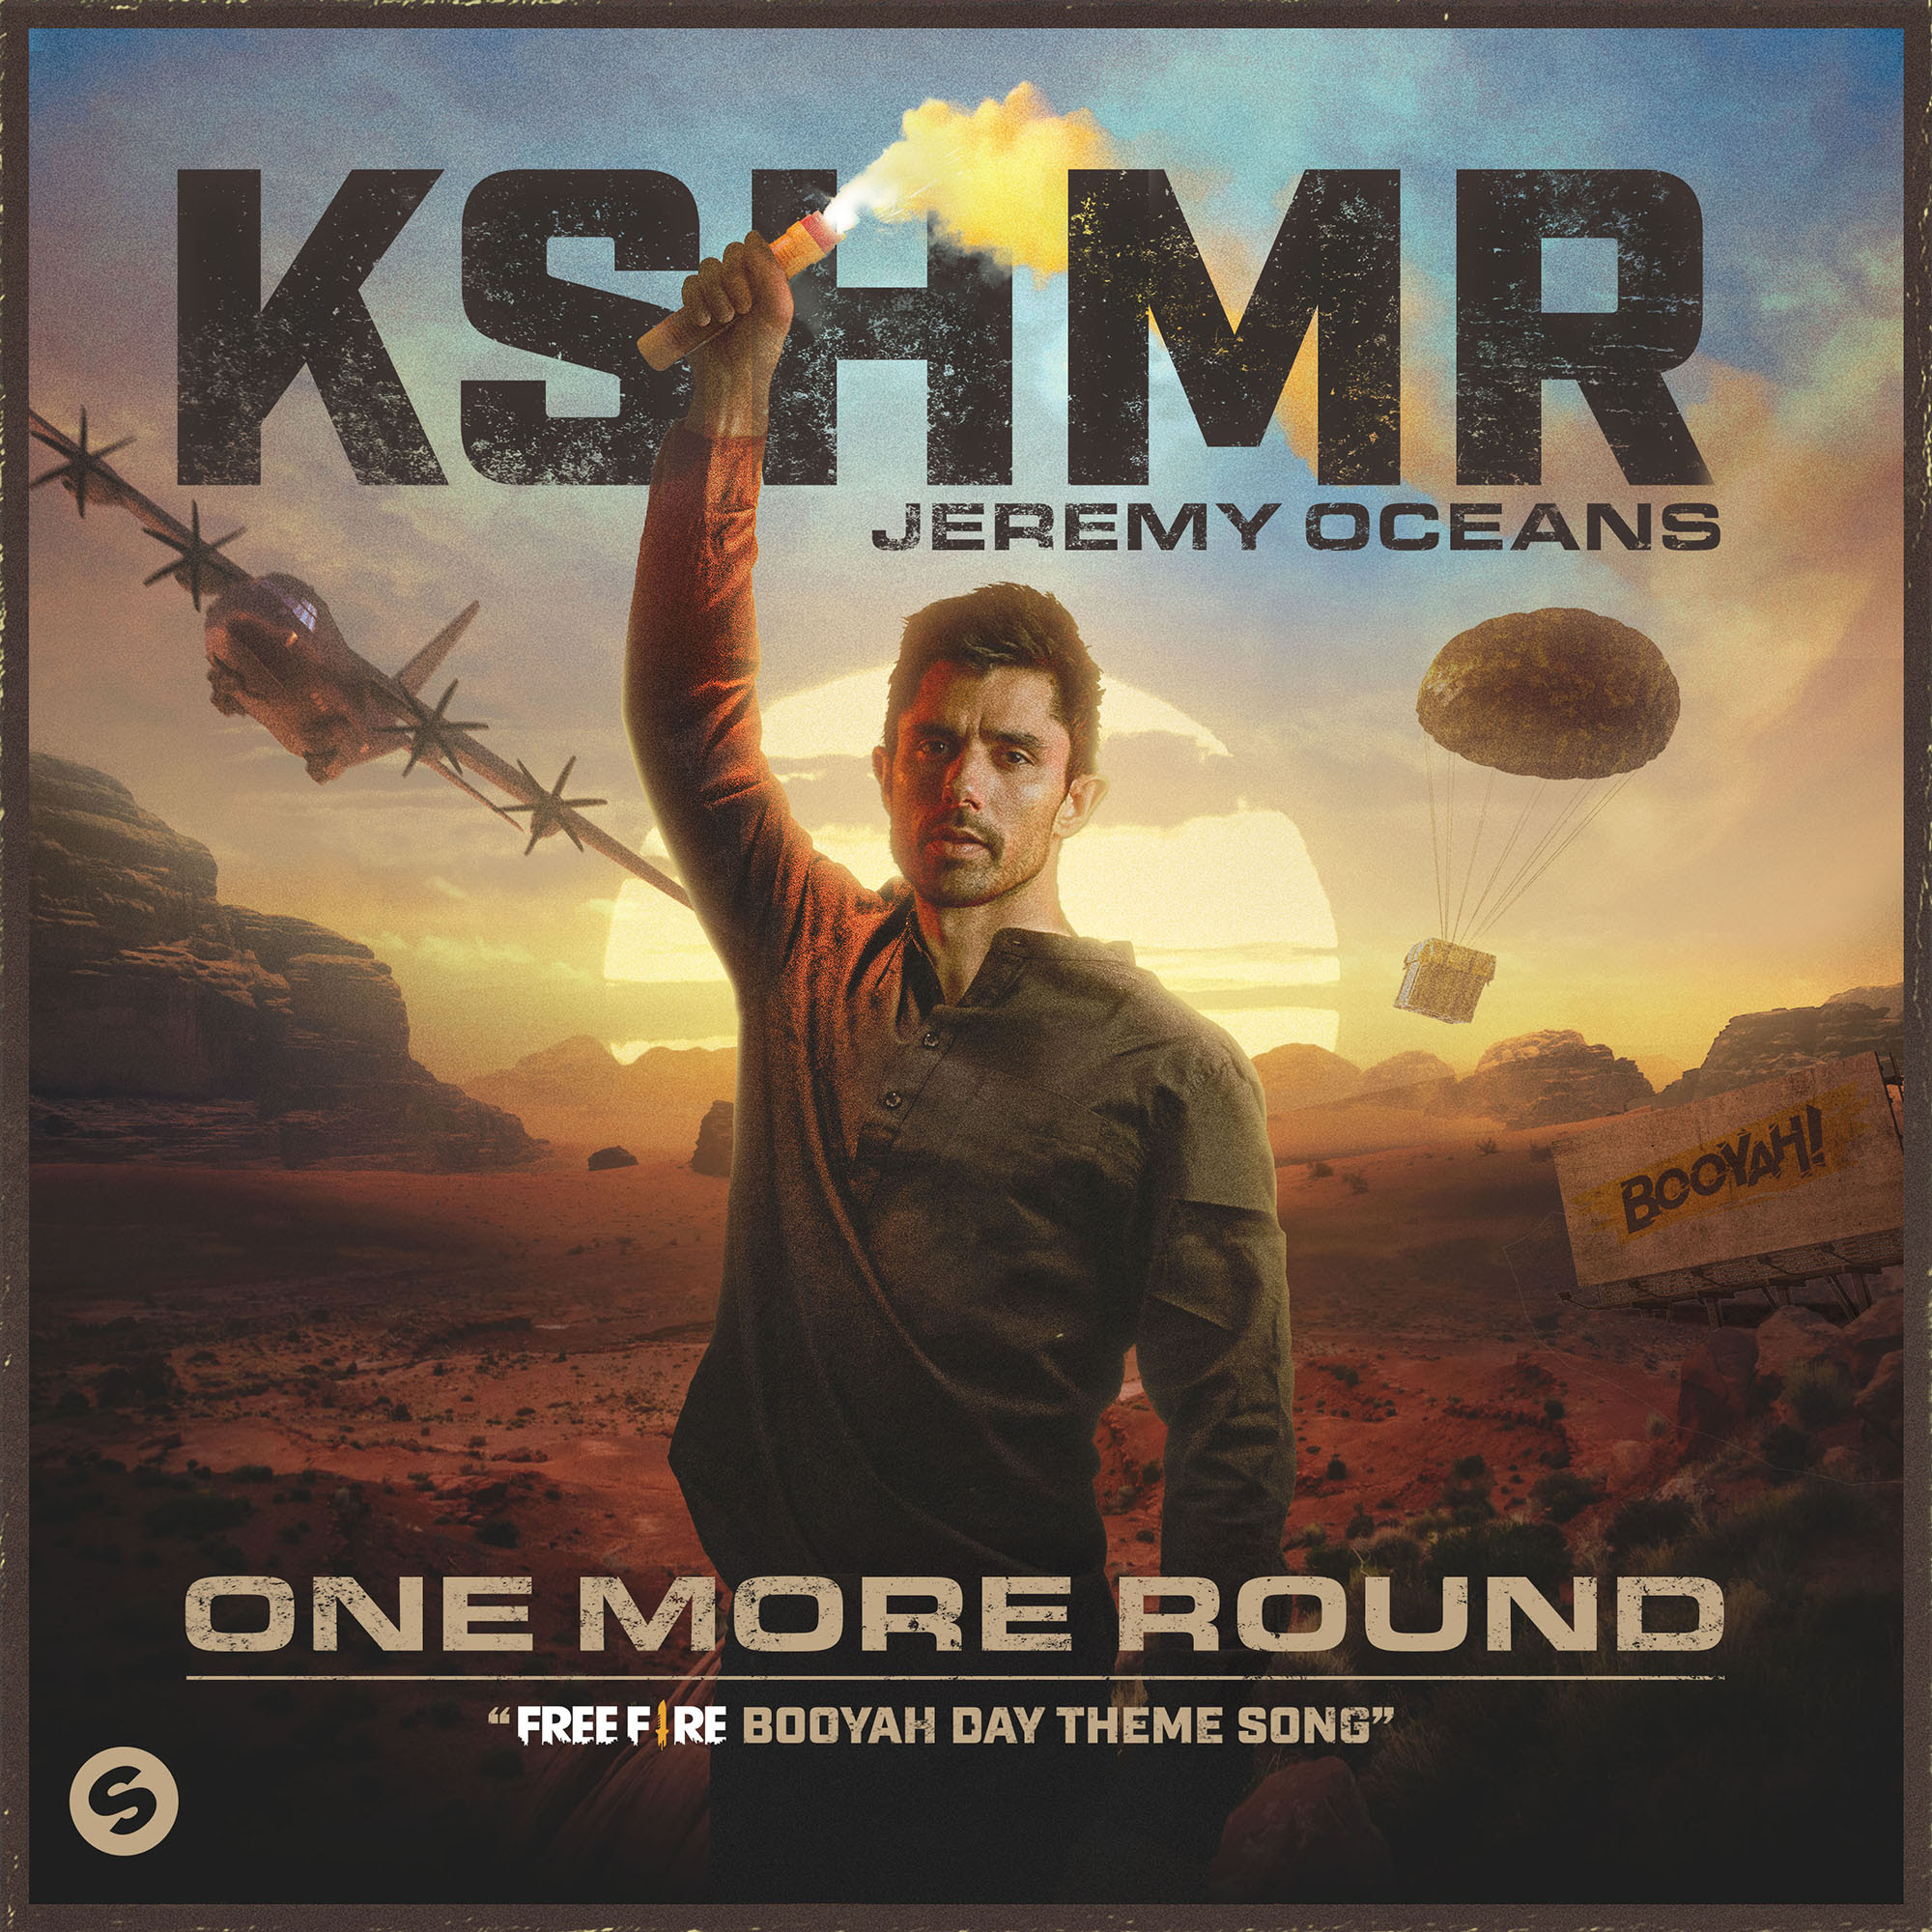 'One More Round (música tema do evento Free Fire Booyah Day)'